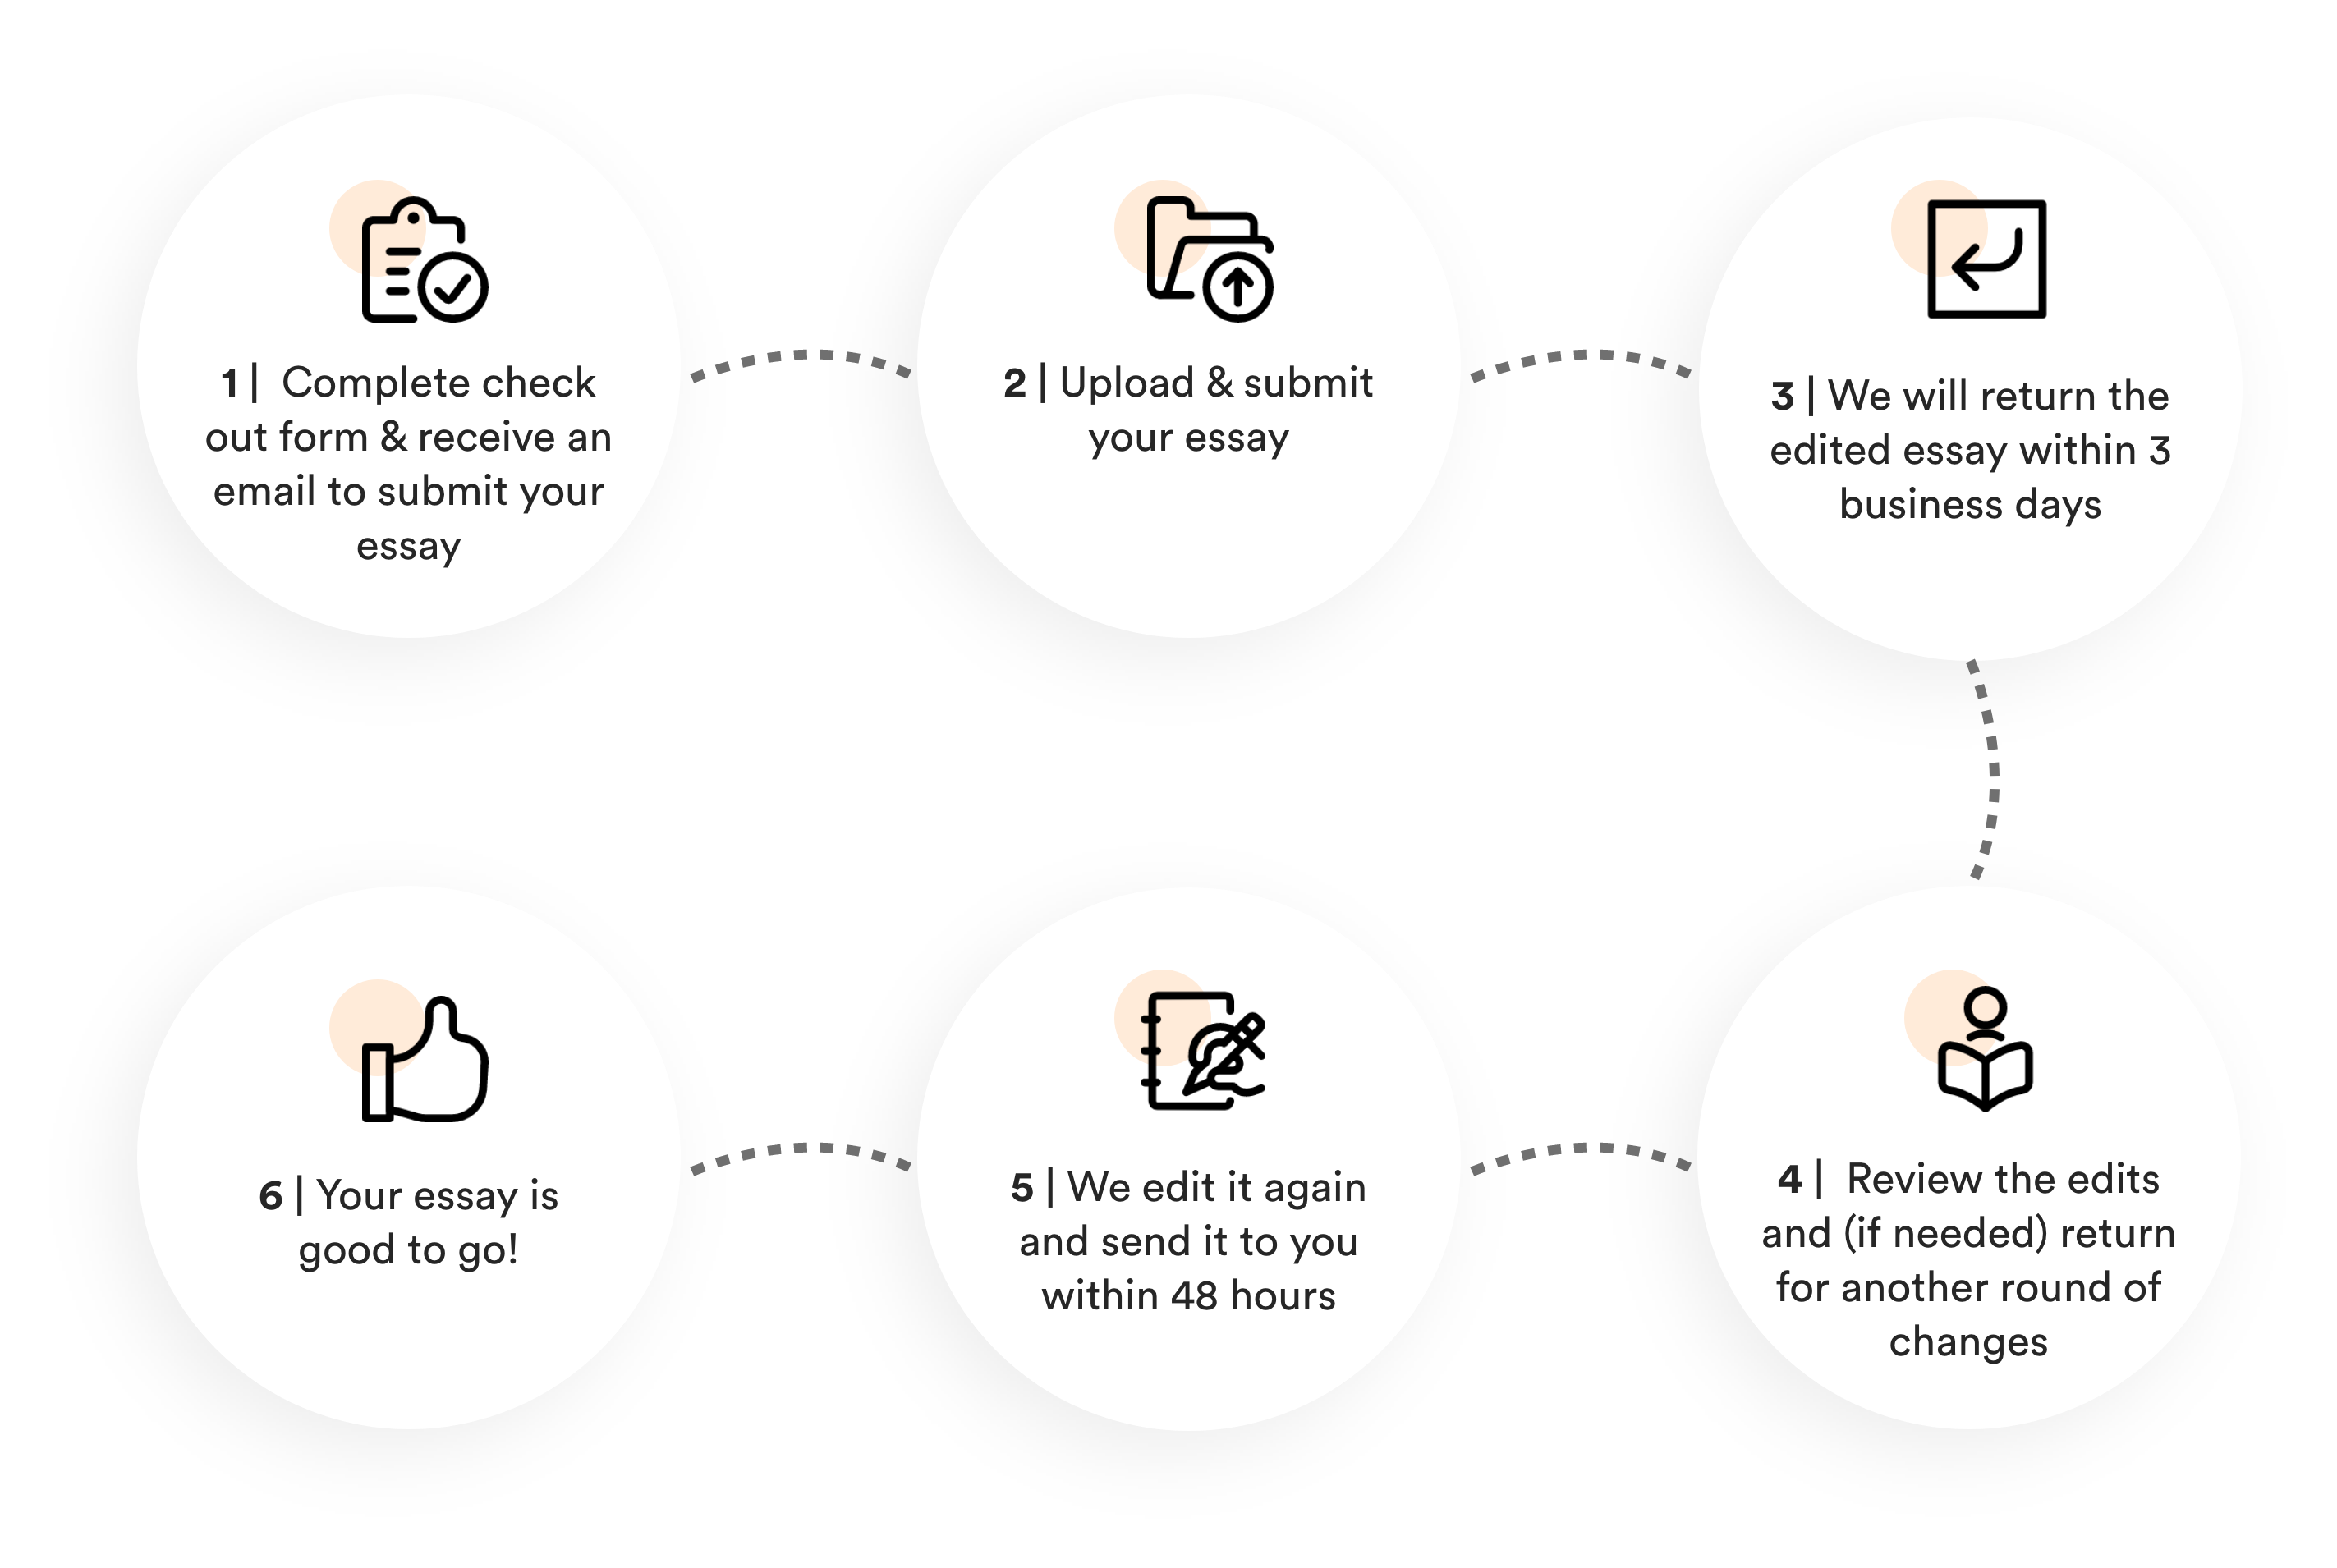 image of the steps on how we review one's essay 2